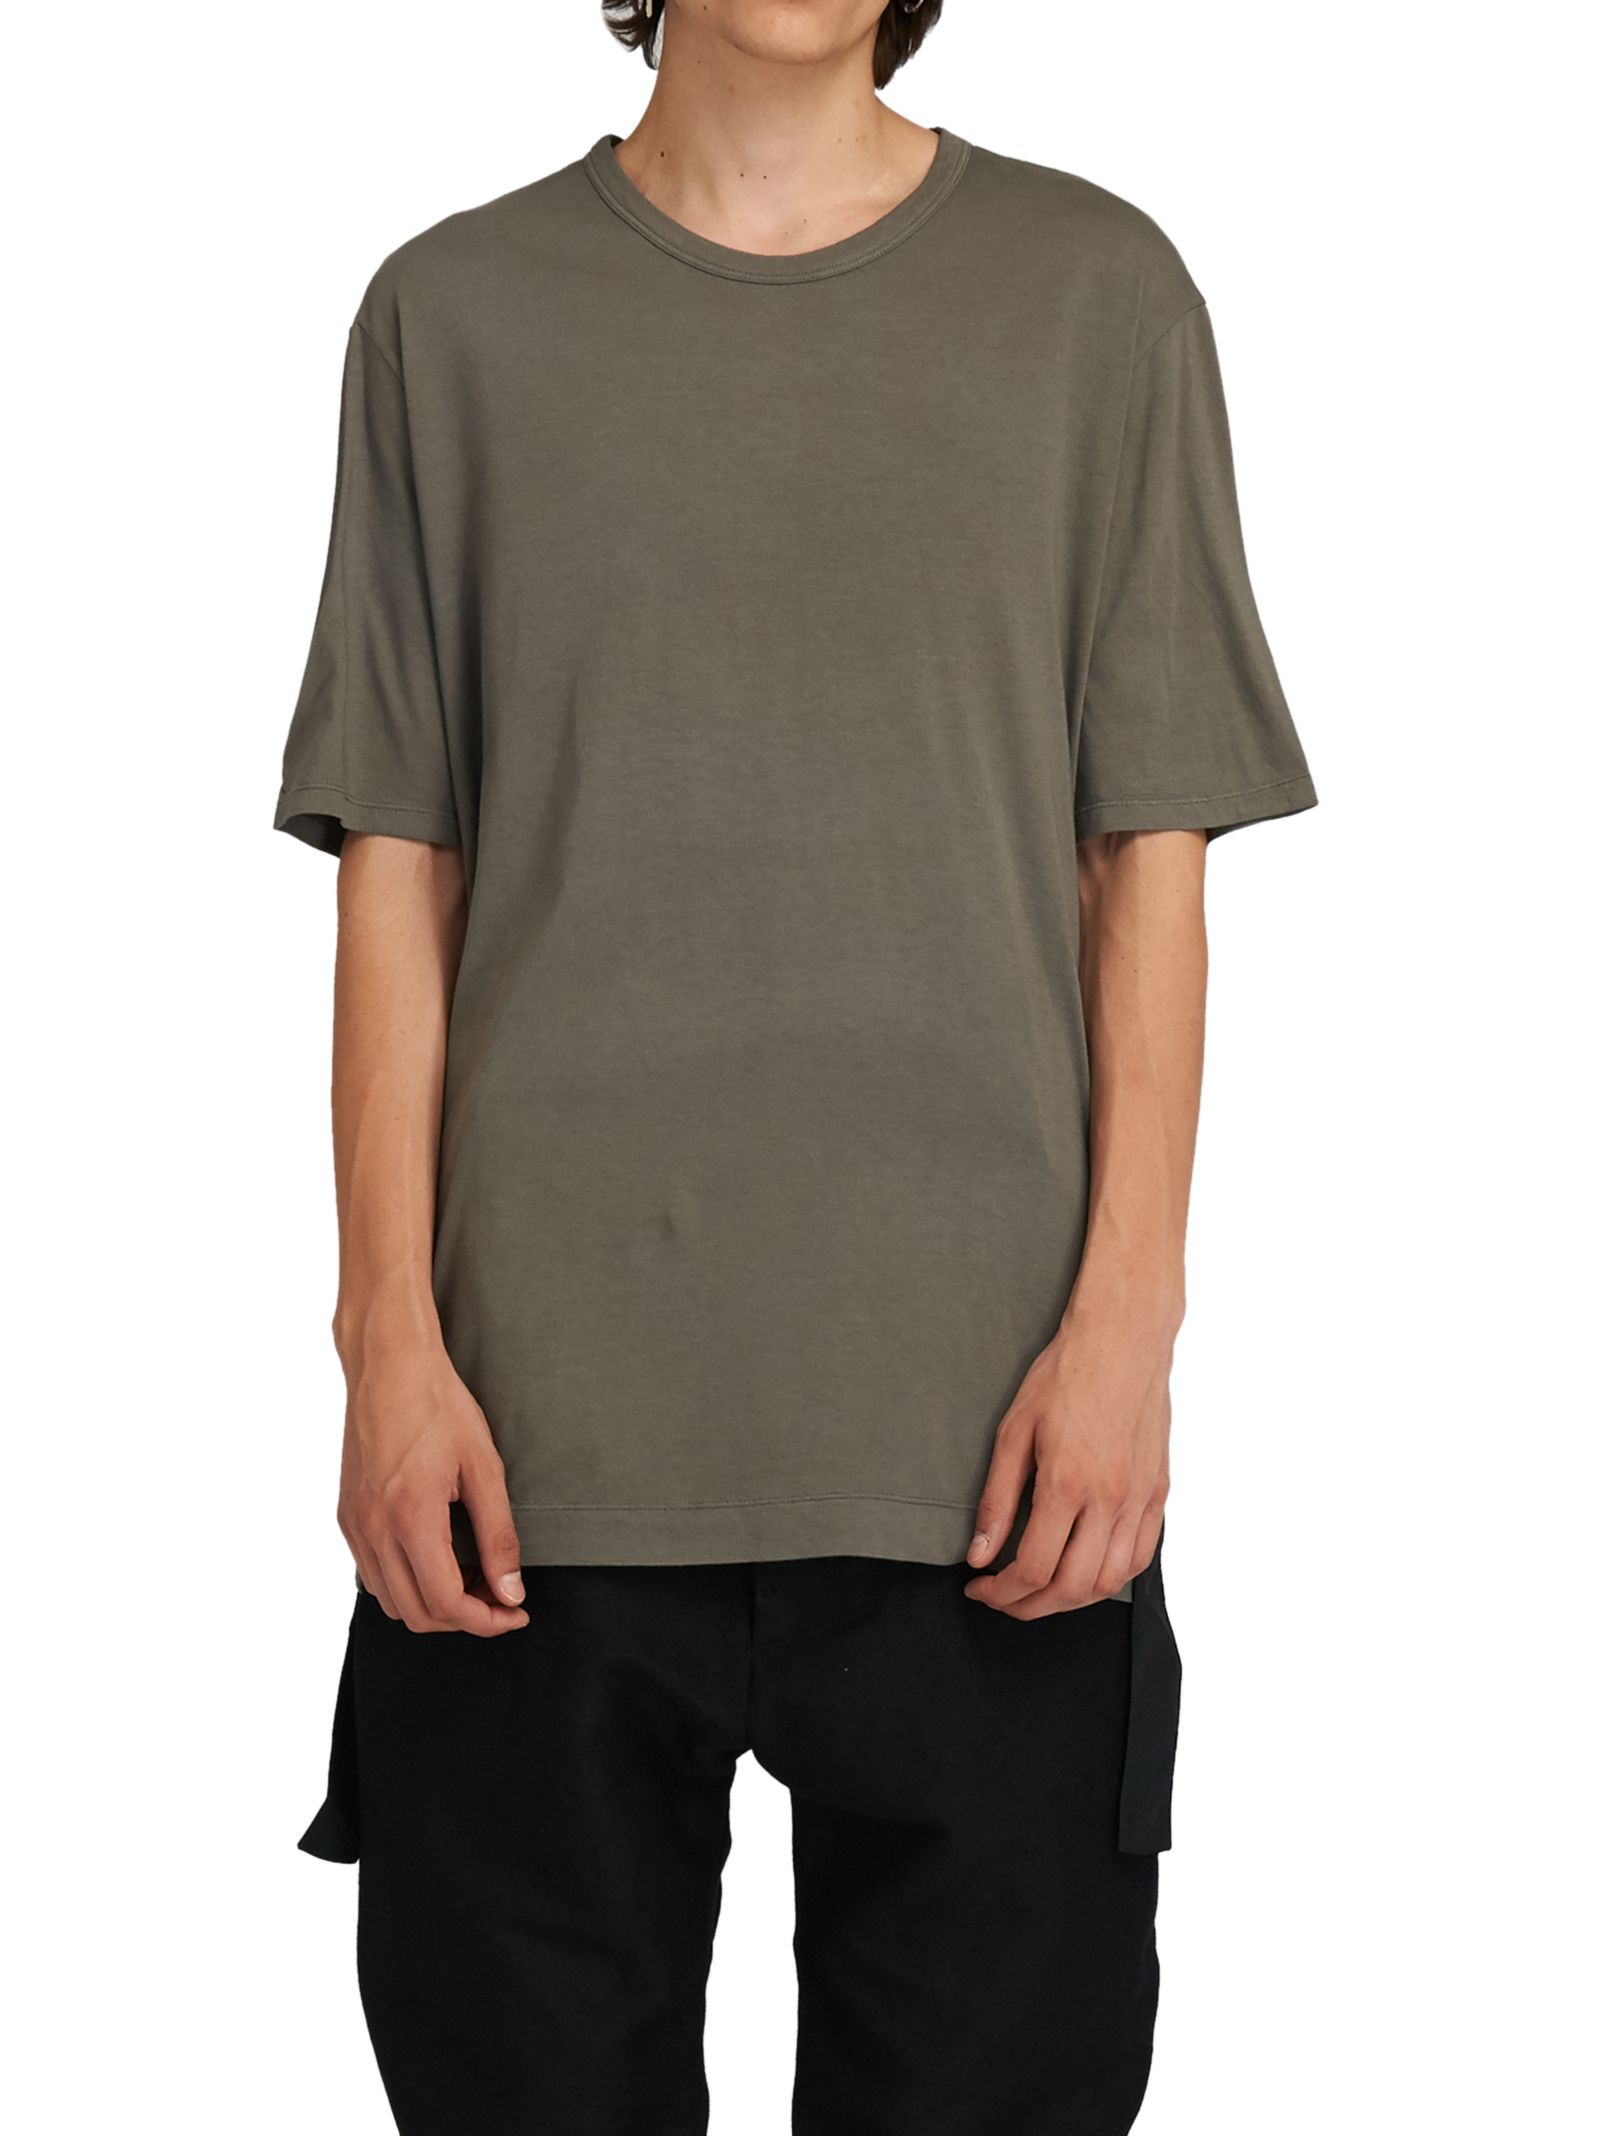 Lost & Found Olive T-shirt In Cotton